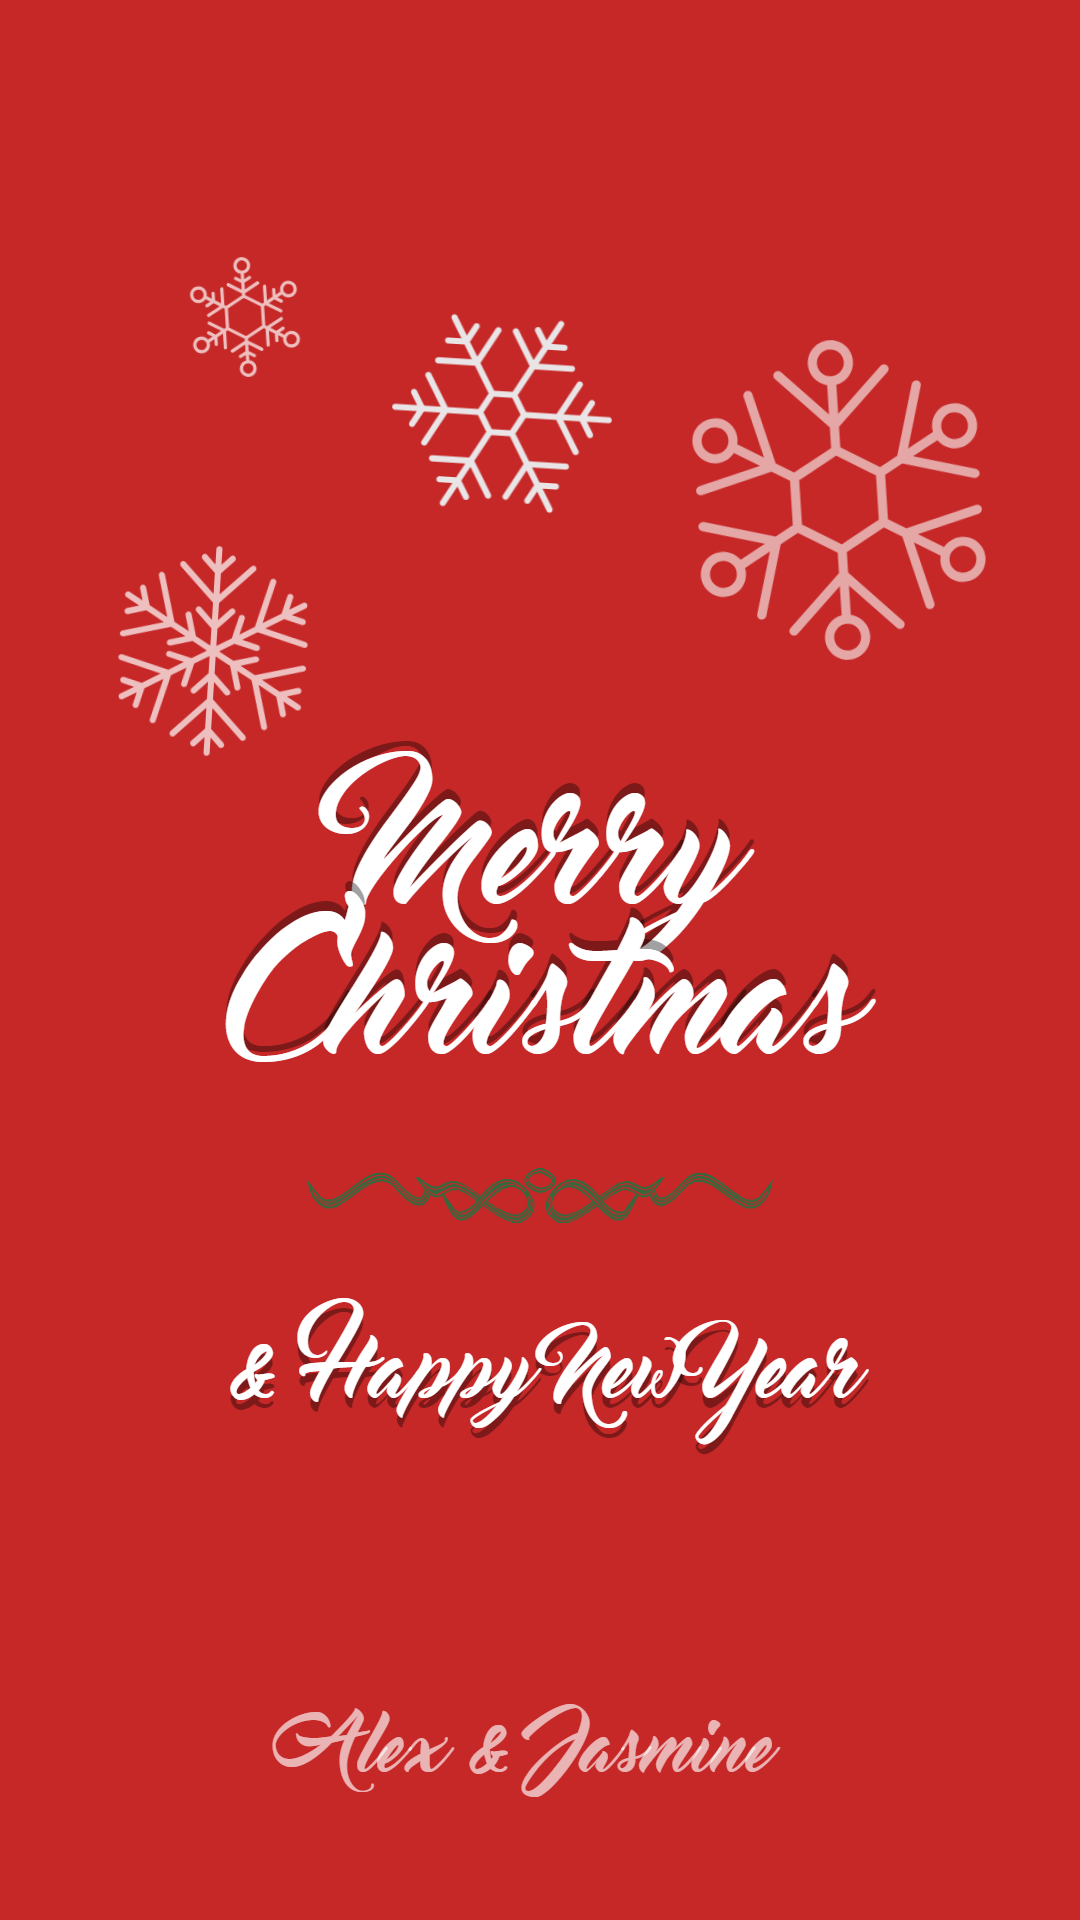 Christmas, Anniversary, Holiday, Happynewyear, Red,  Free Image